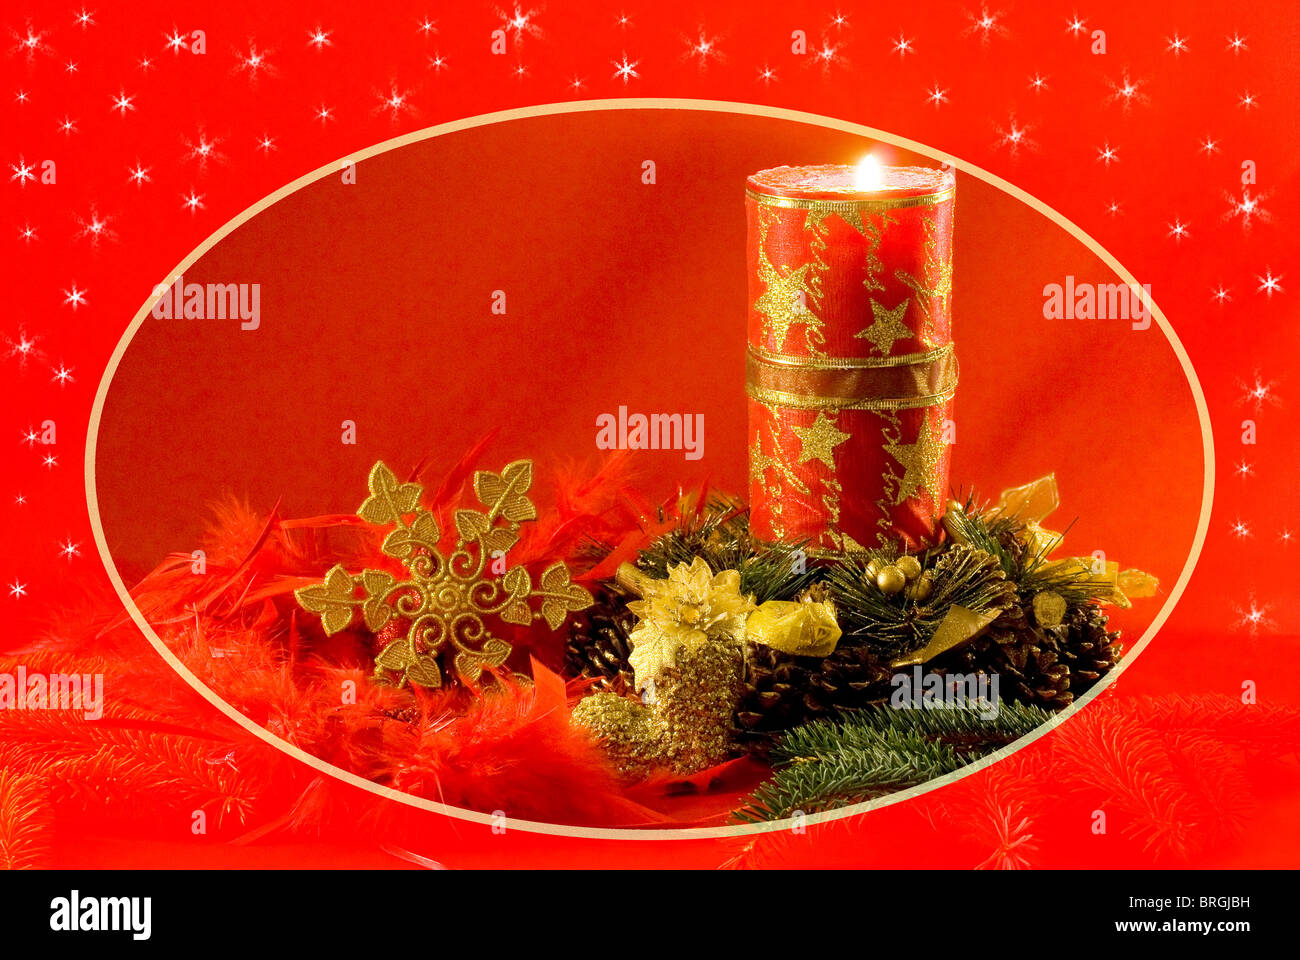 Christmas decorations - red candle, cones, golden snow star, spruce twig and red feathers - Stock Image